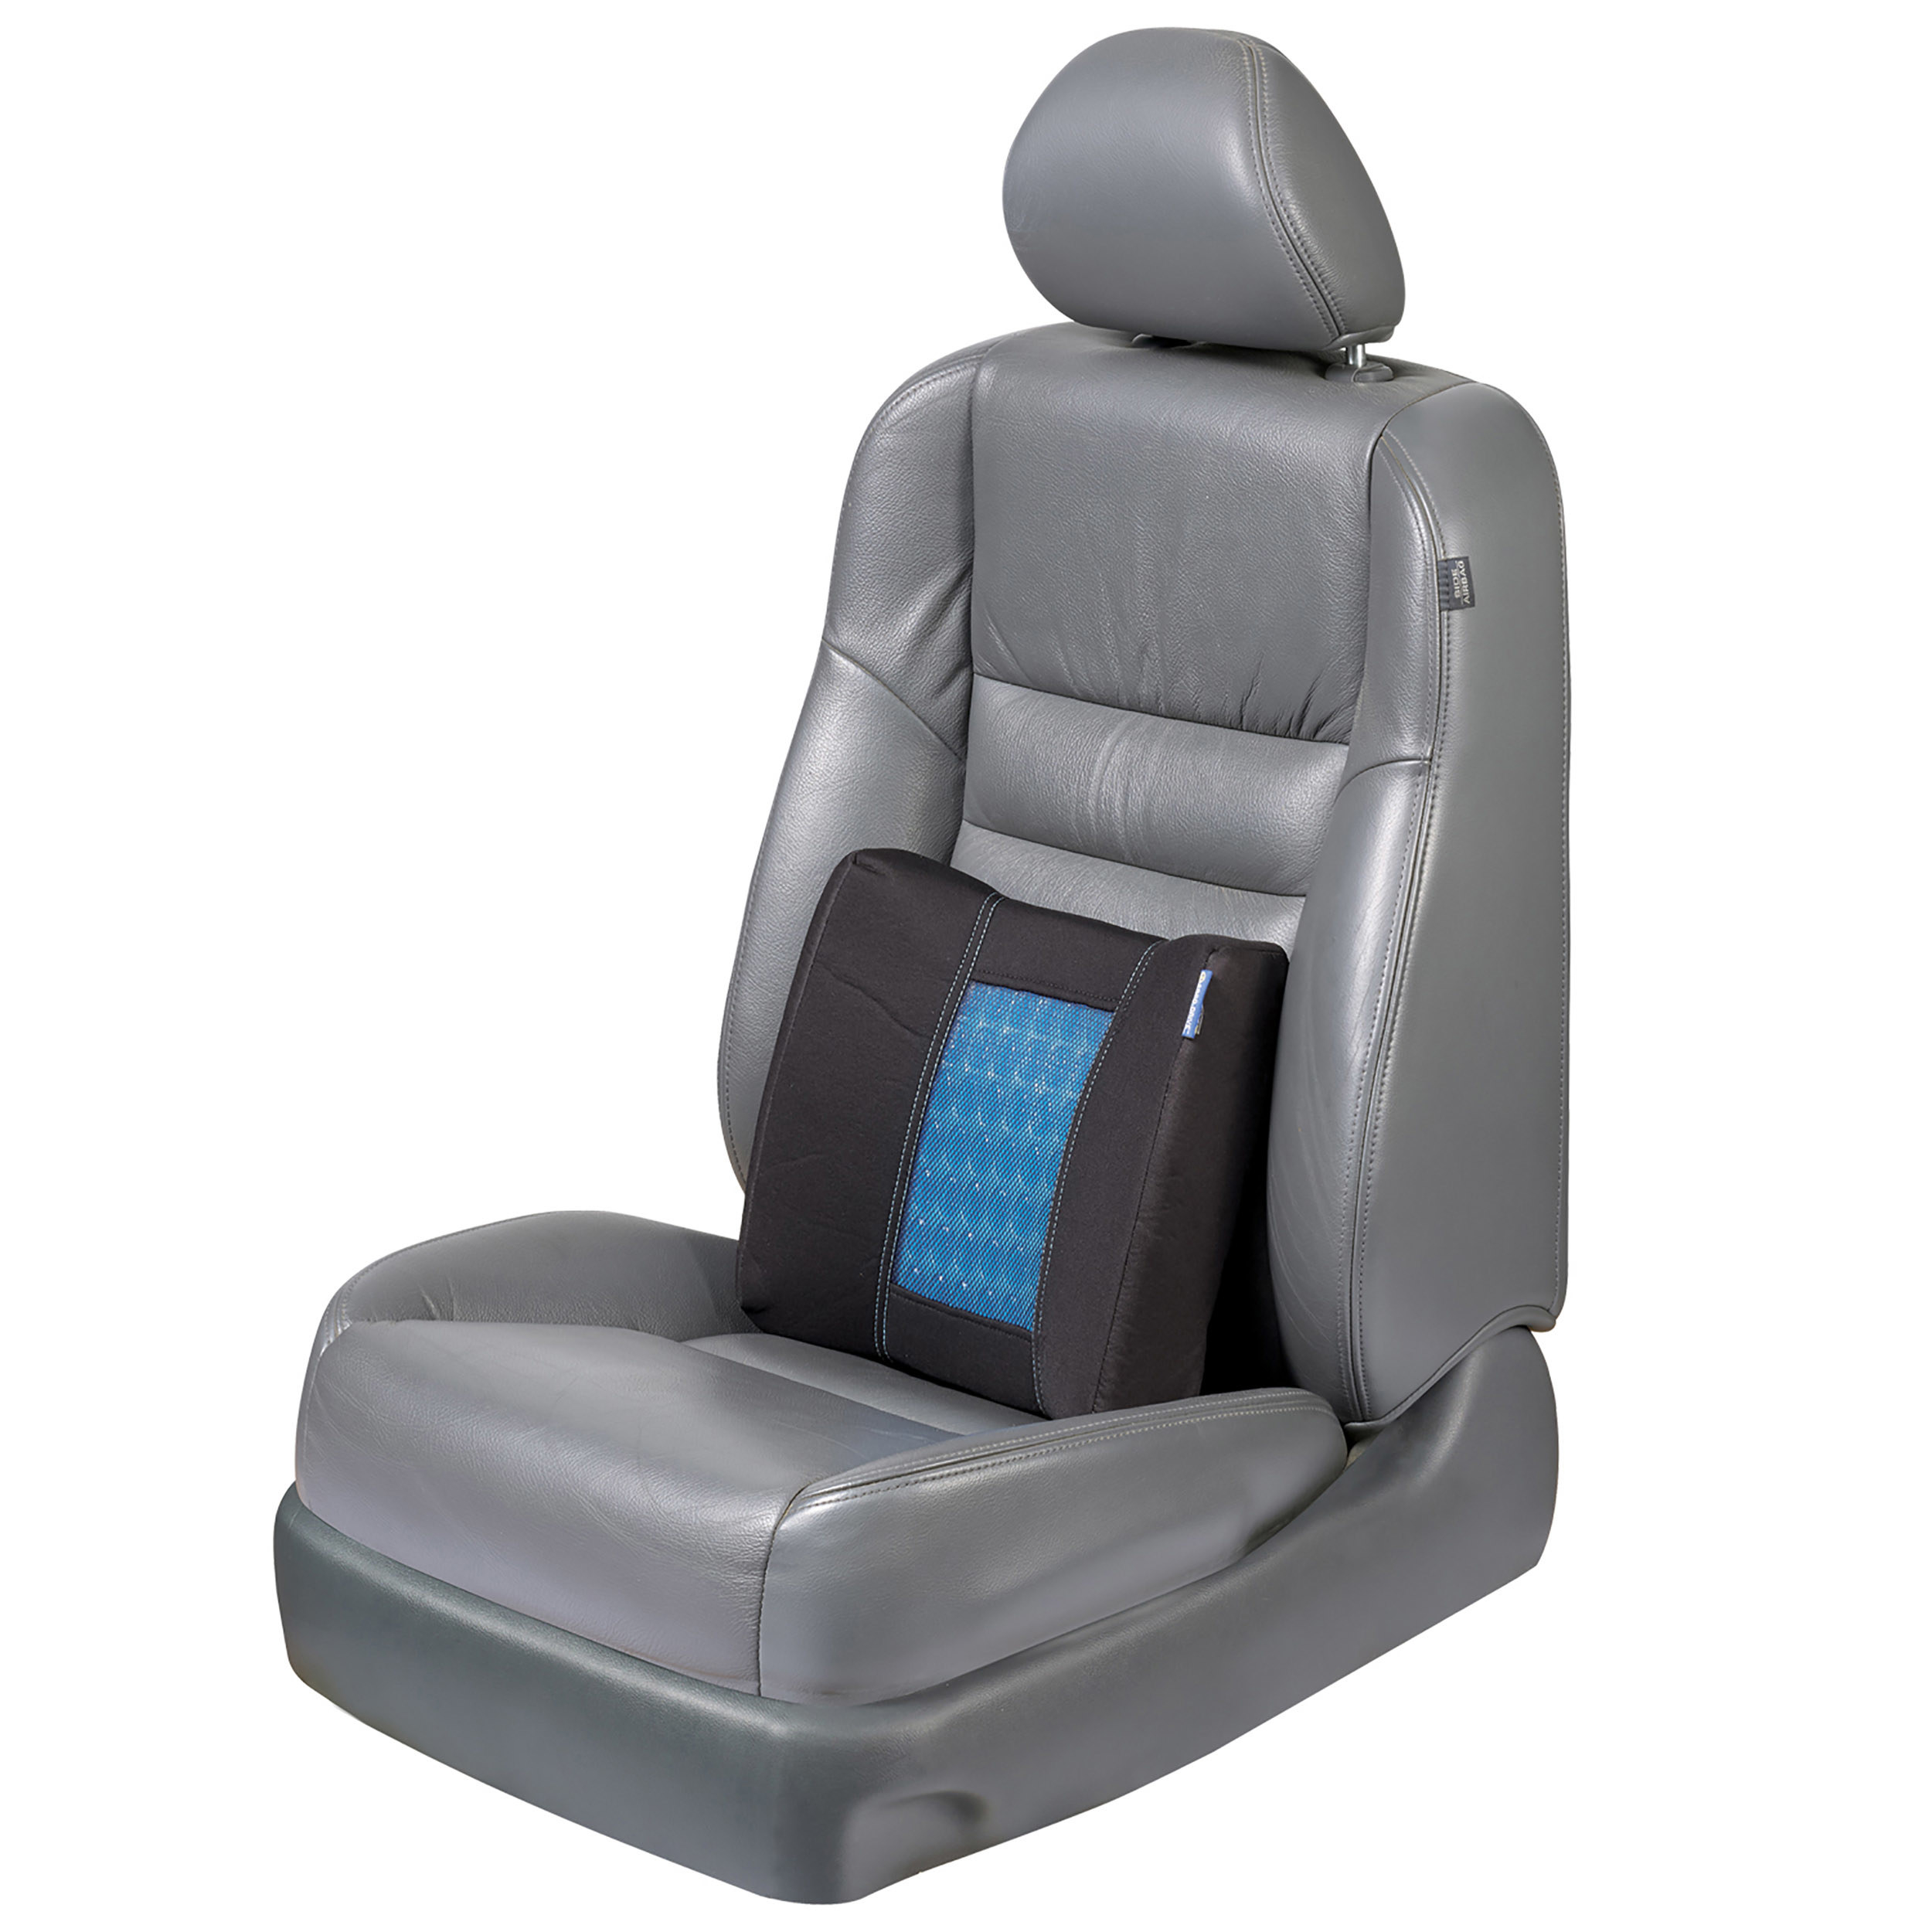 black and blue seat cushion on a car seat